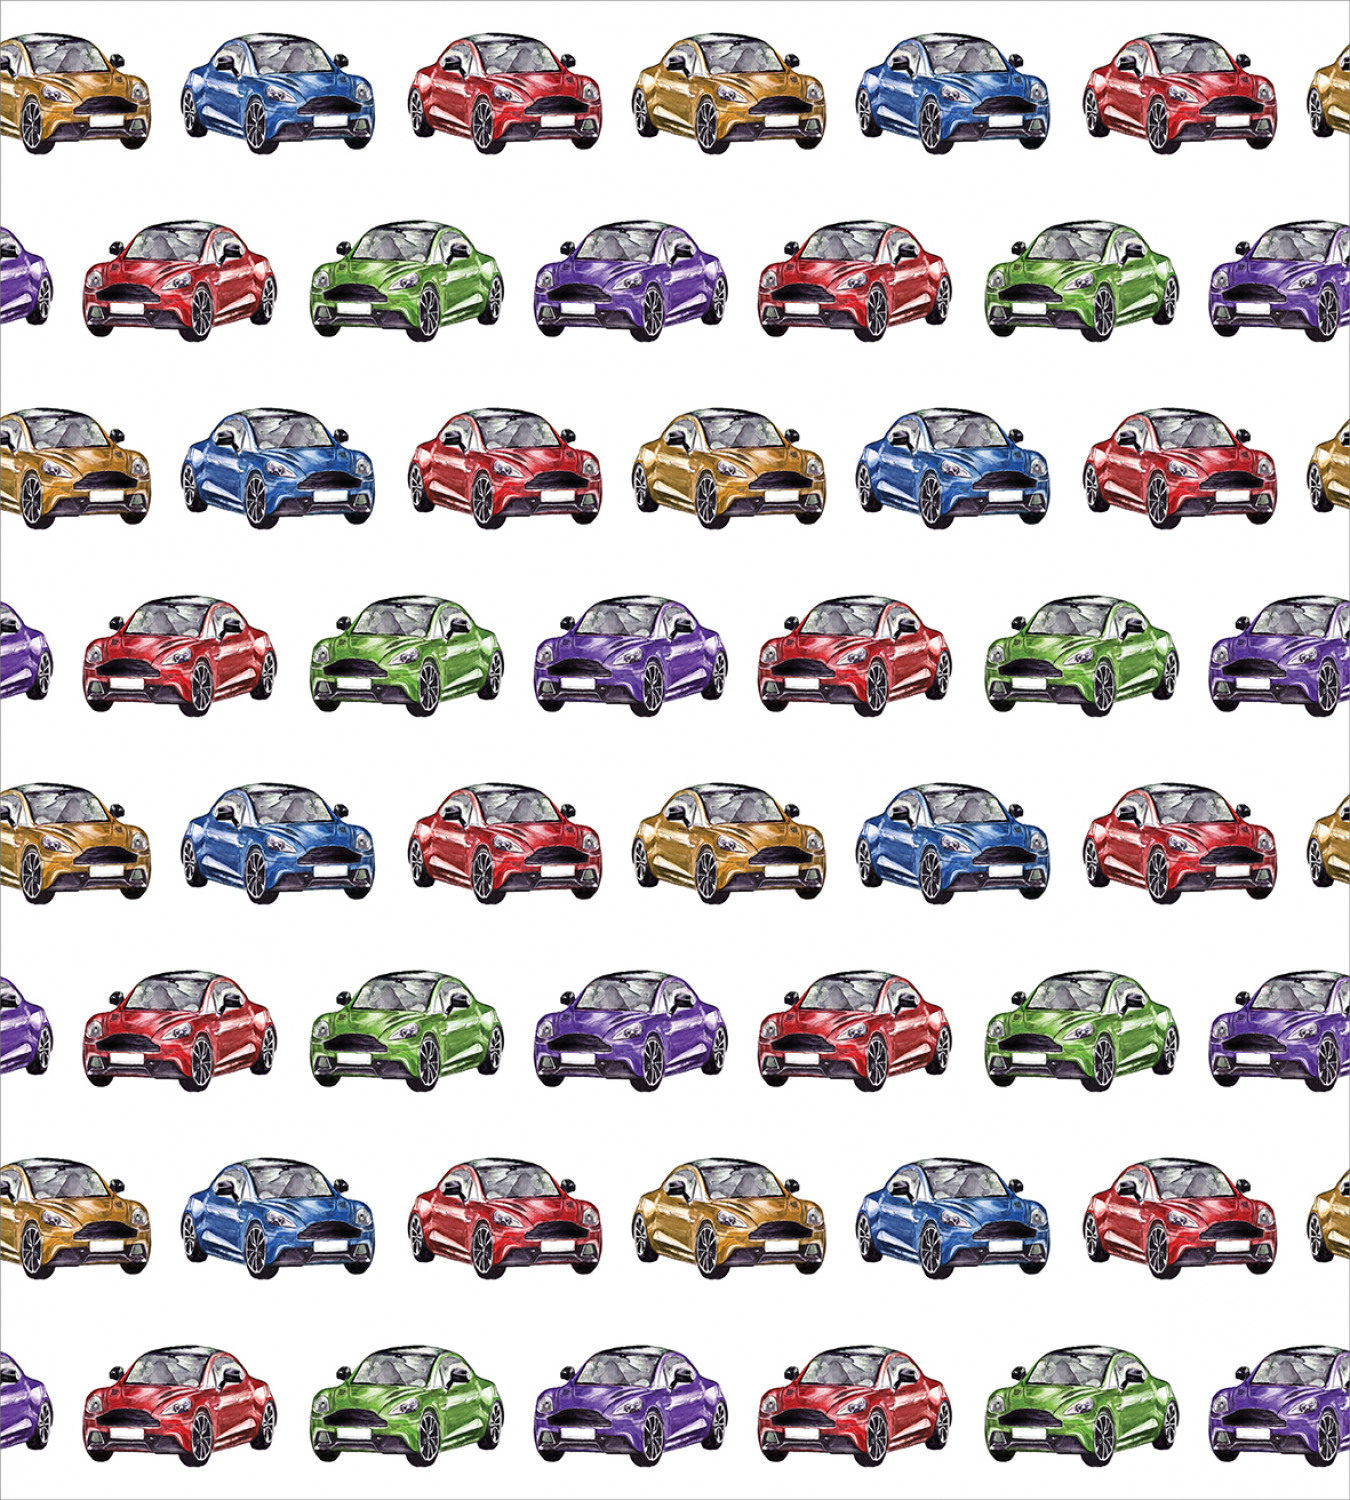 Colorful-Cars-Duvet-Cover-Set-Twin-Queen-King-Sizes-with-Pillow-Shams-Bedding miniature 41